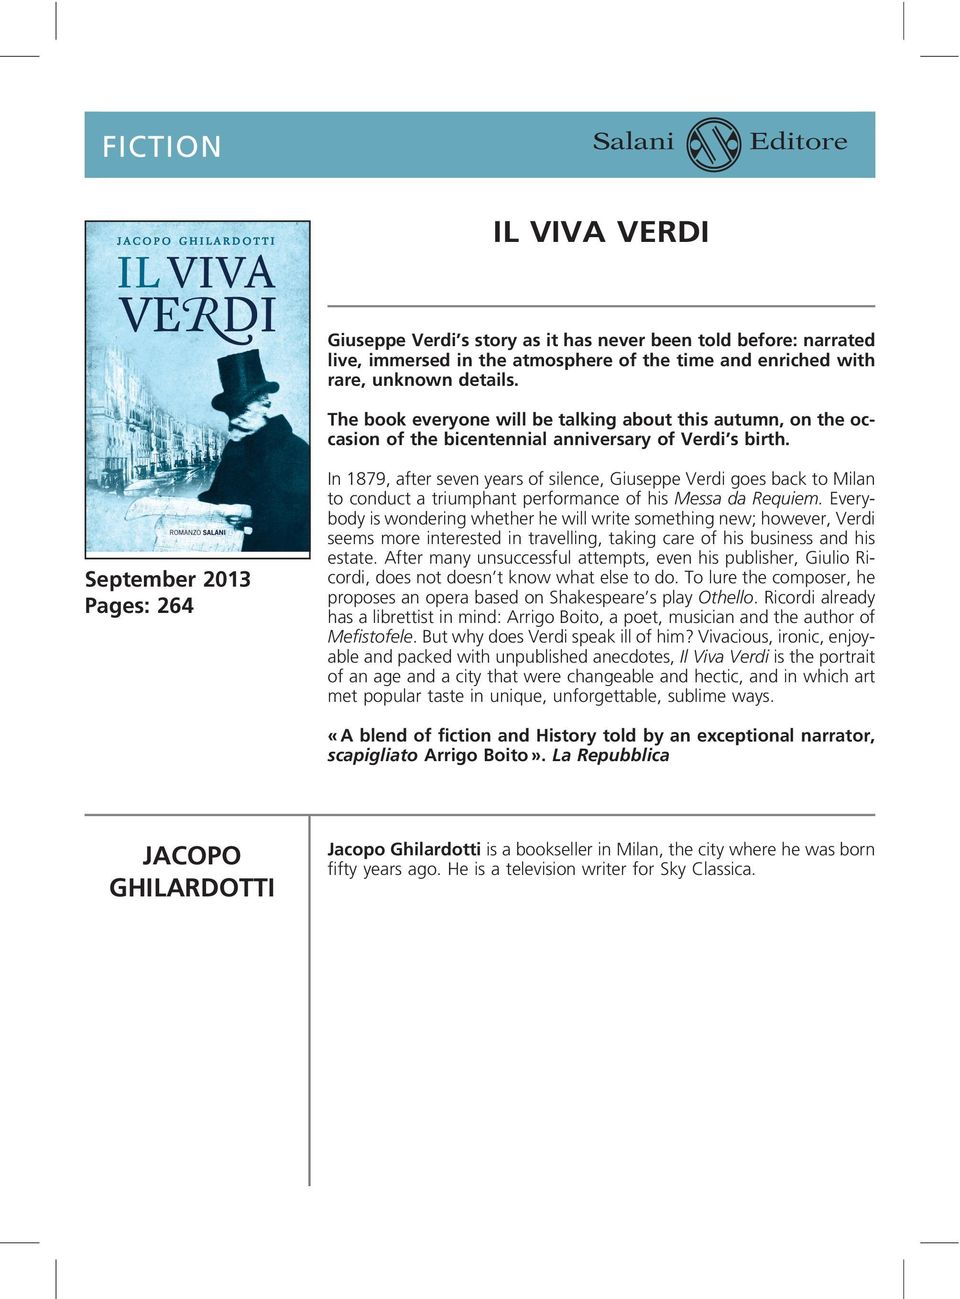 September 2013 Pages: 264 In 1879, after seven years of silence, Giuseppe Verdi goes back to Milan to conduct a triumphant performance of his Messa da Requiem.